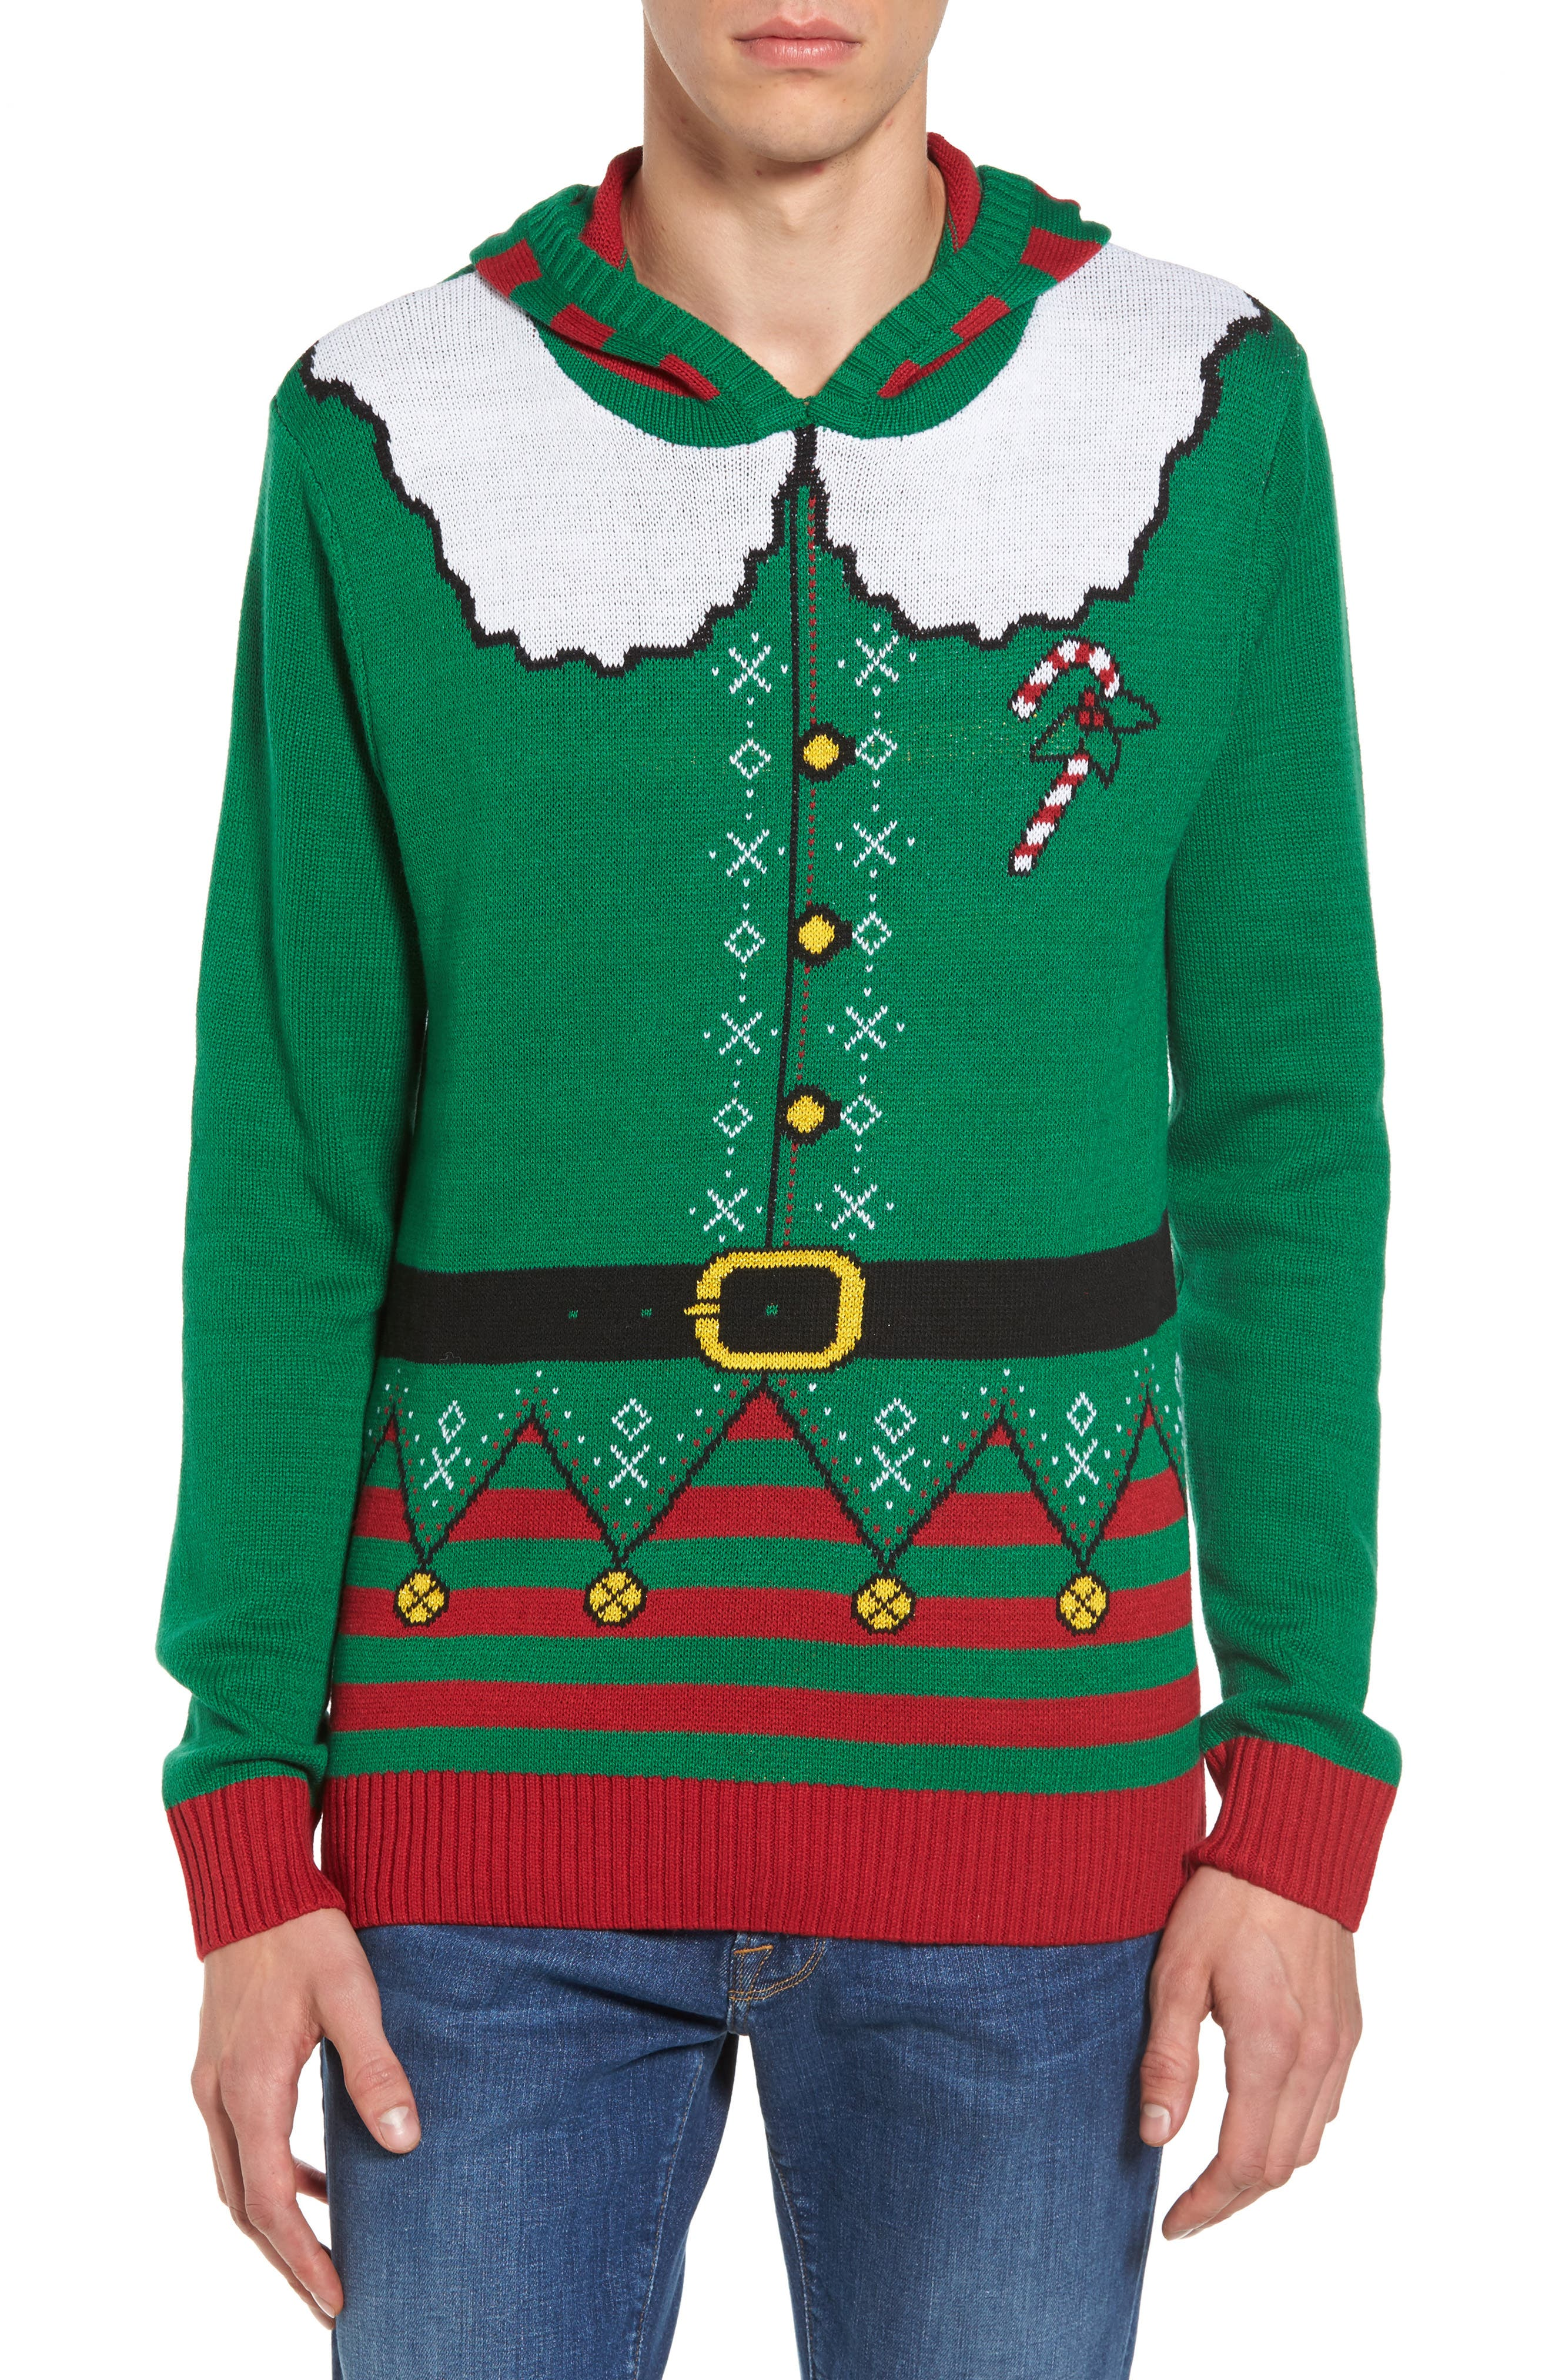 Elf Hooded Sweater,                             Main thumbnail 1, color,                             310